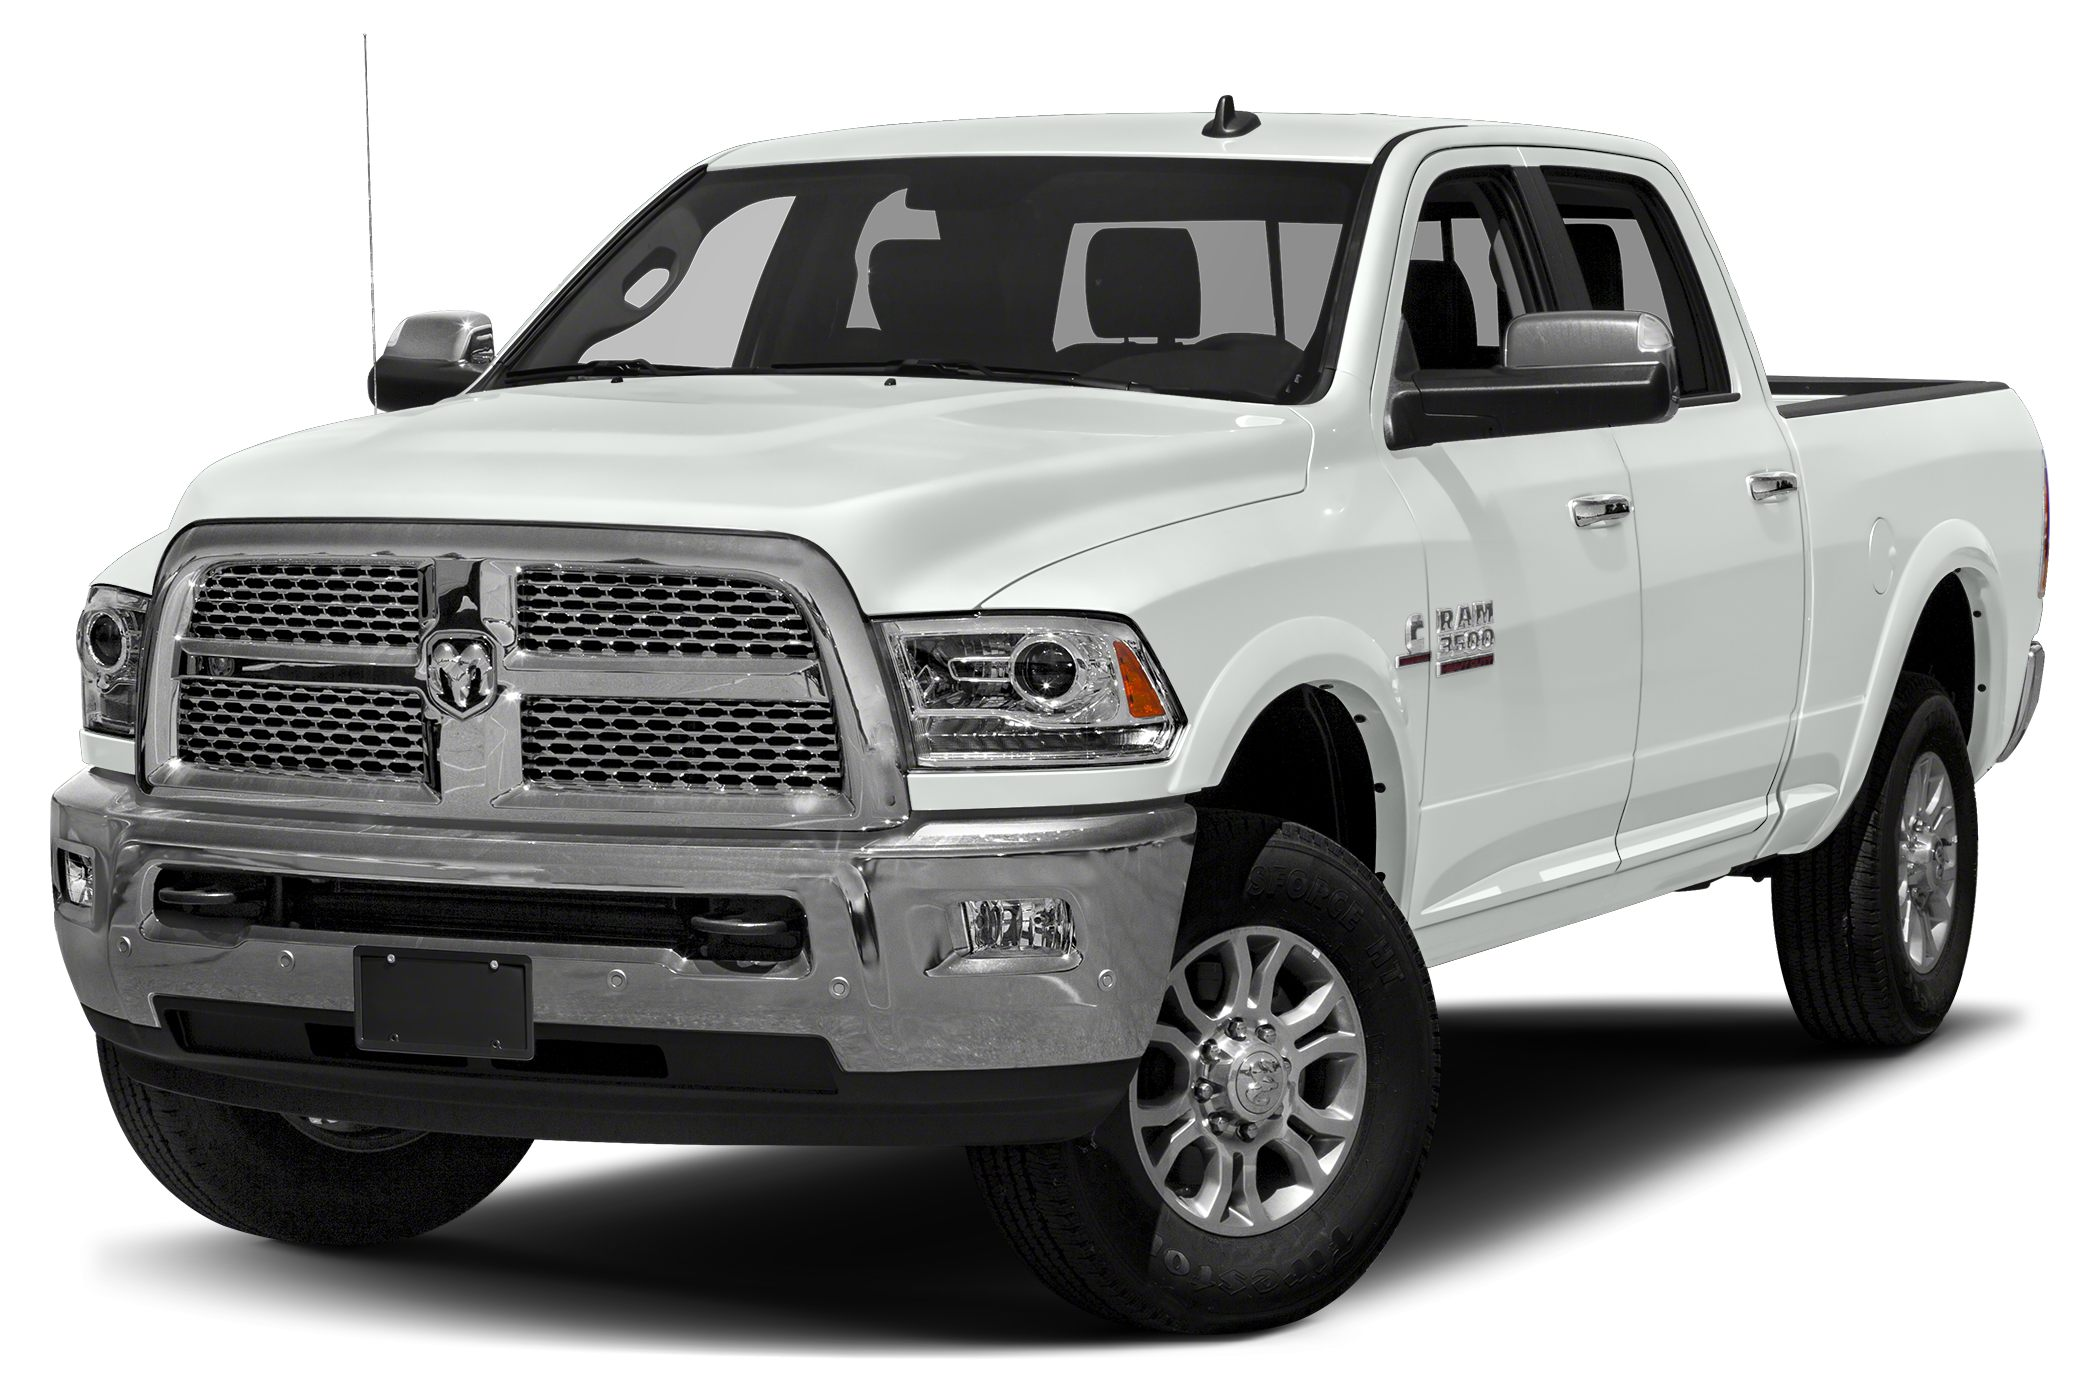 2018 RAM 3500 Laramie Bright White Clearcoat 2018 Ram 3500 Laramie 4WD 6-Speed Automatic Cummins 6